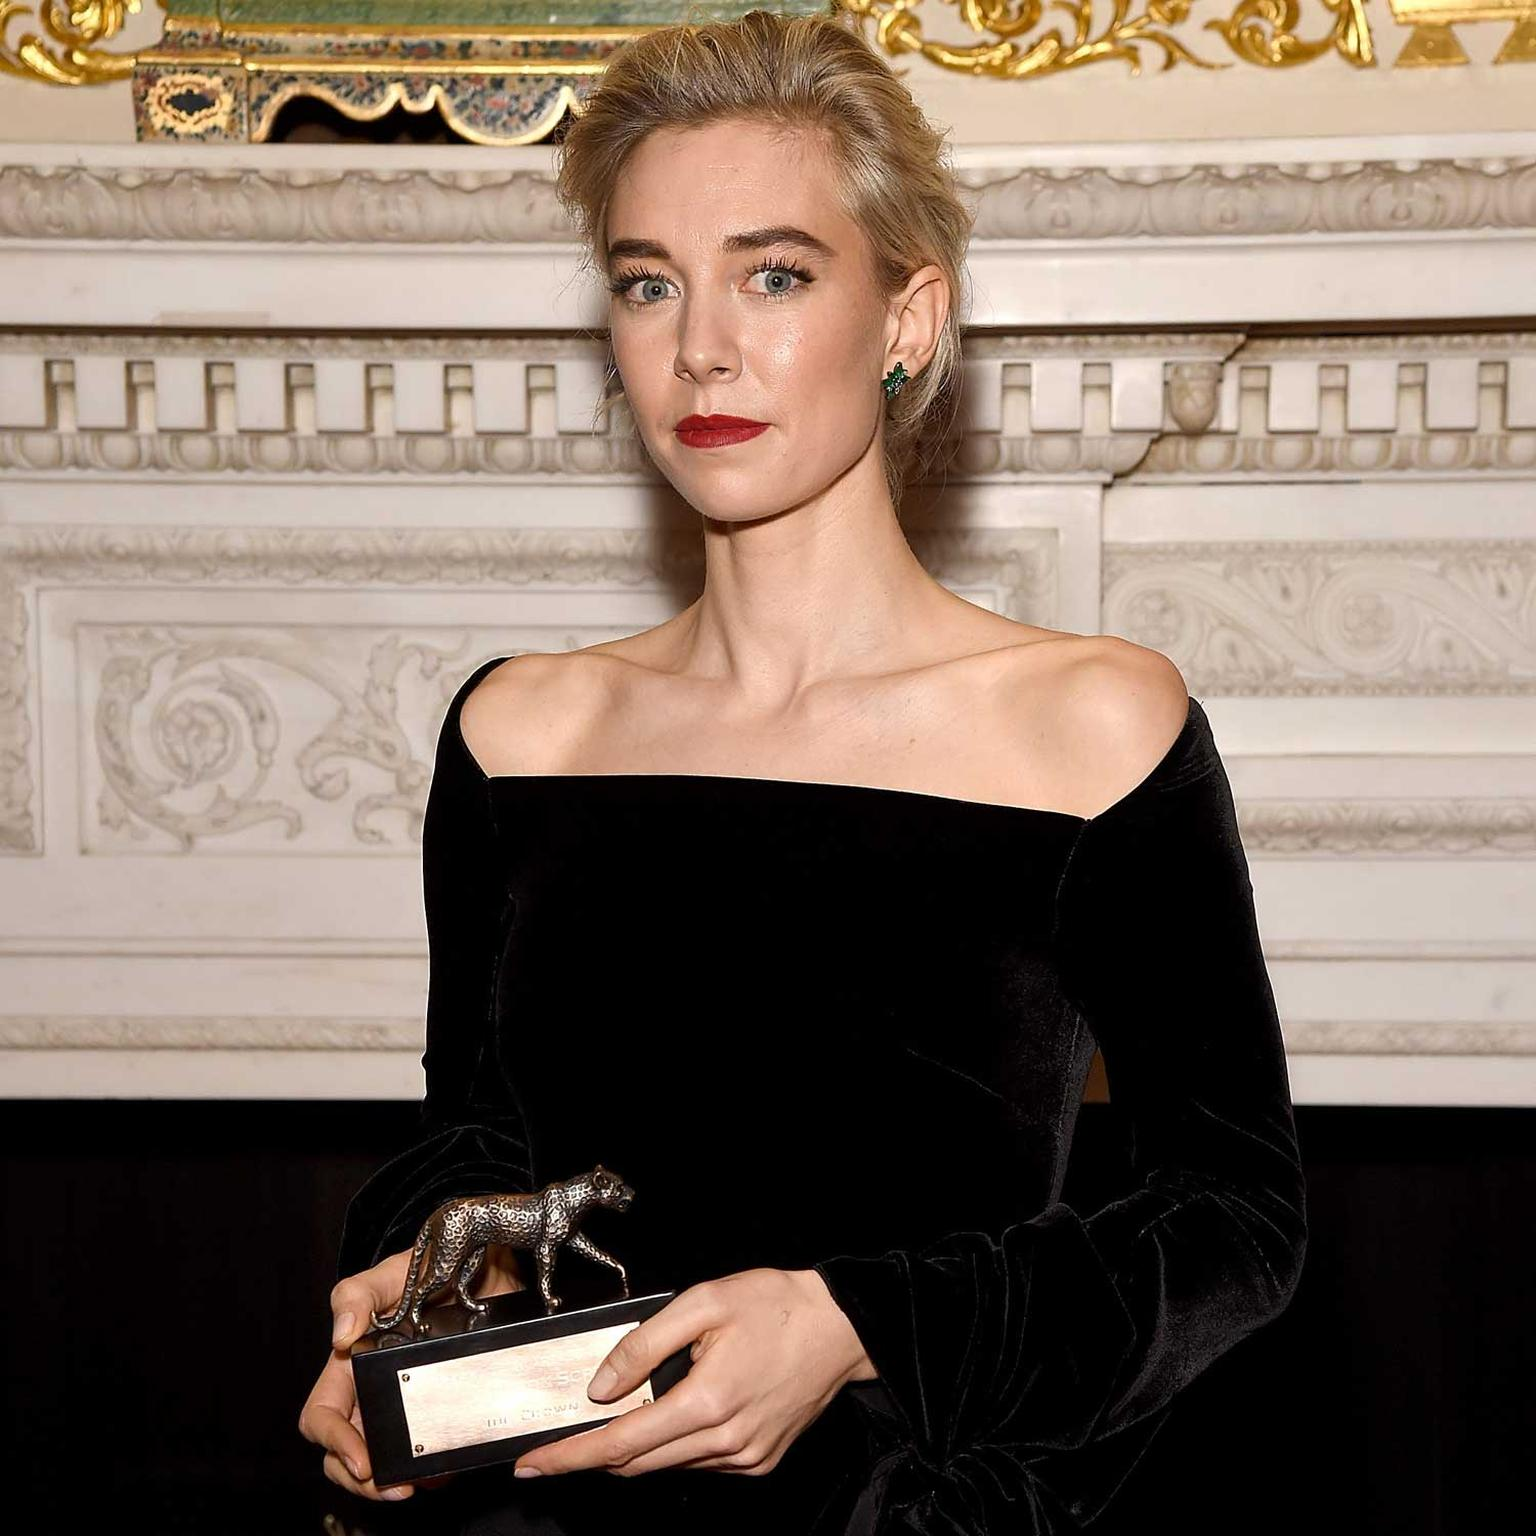 Leopard Award for Jewellery on Screen accepted by Vanessa Kirby on behalf of The Crown